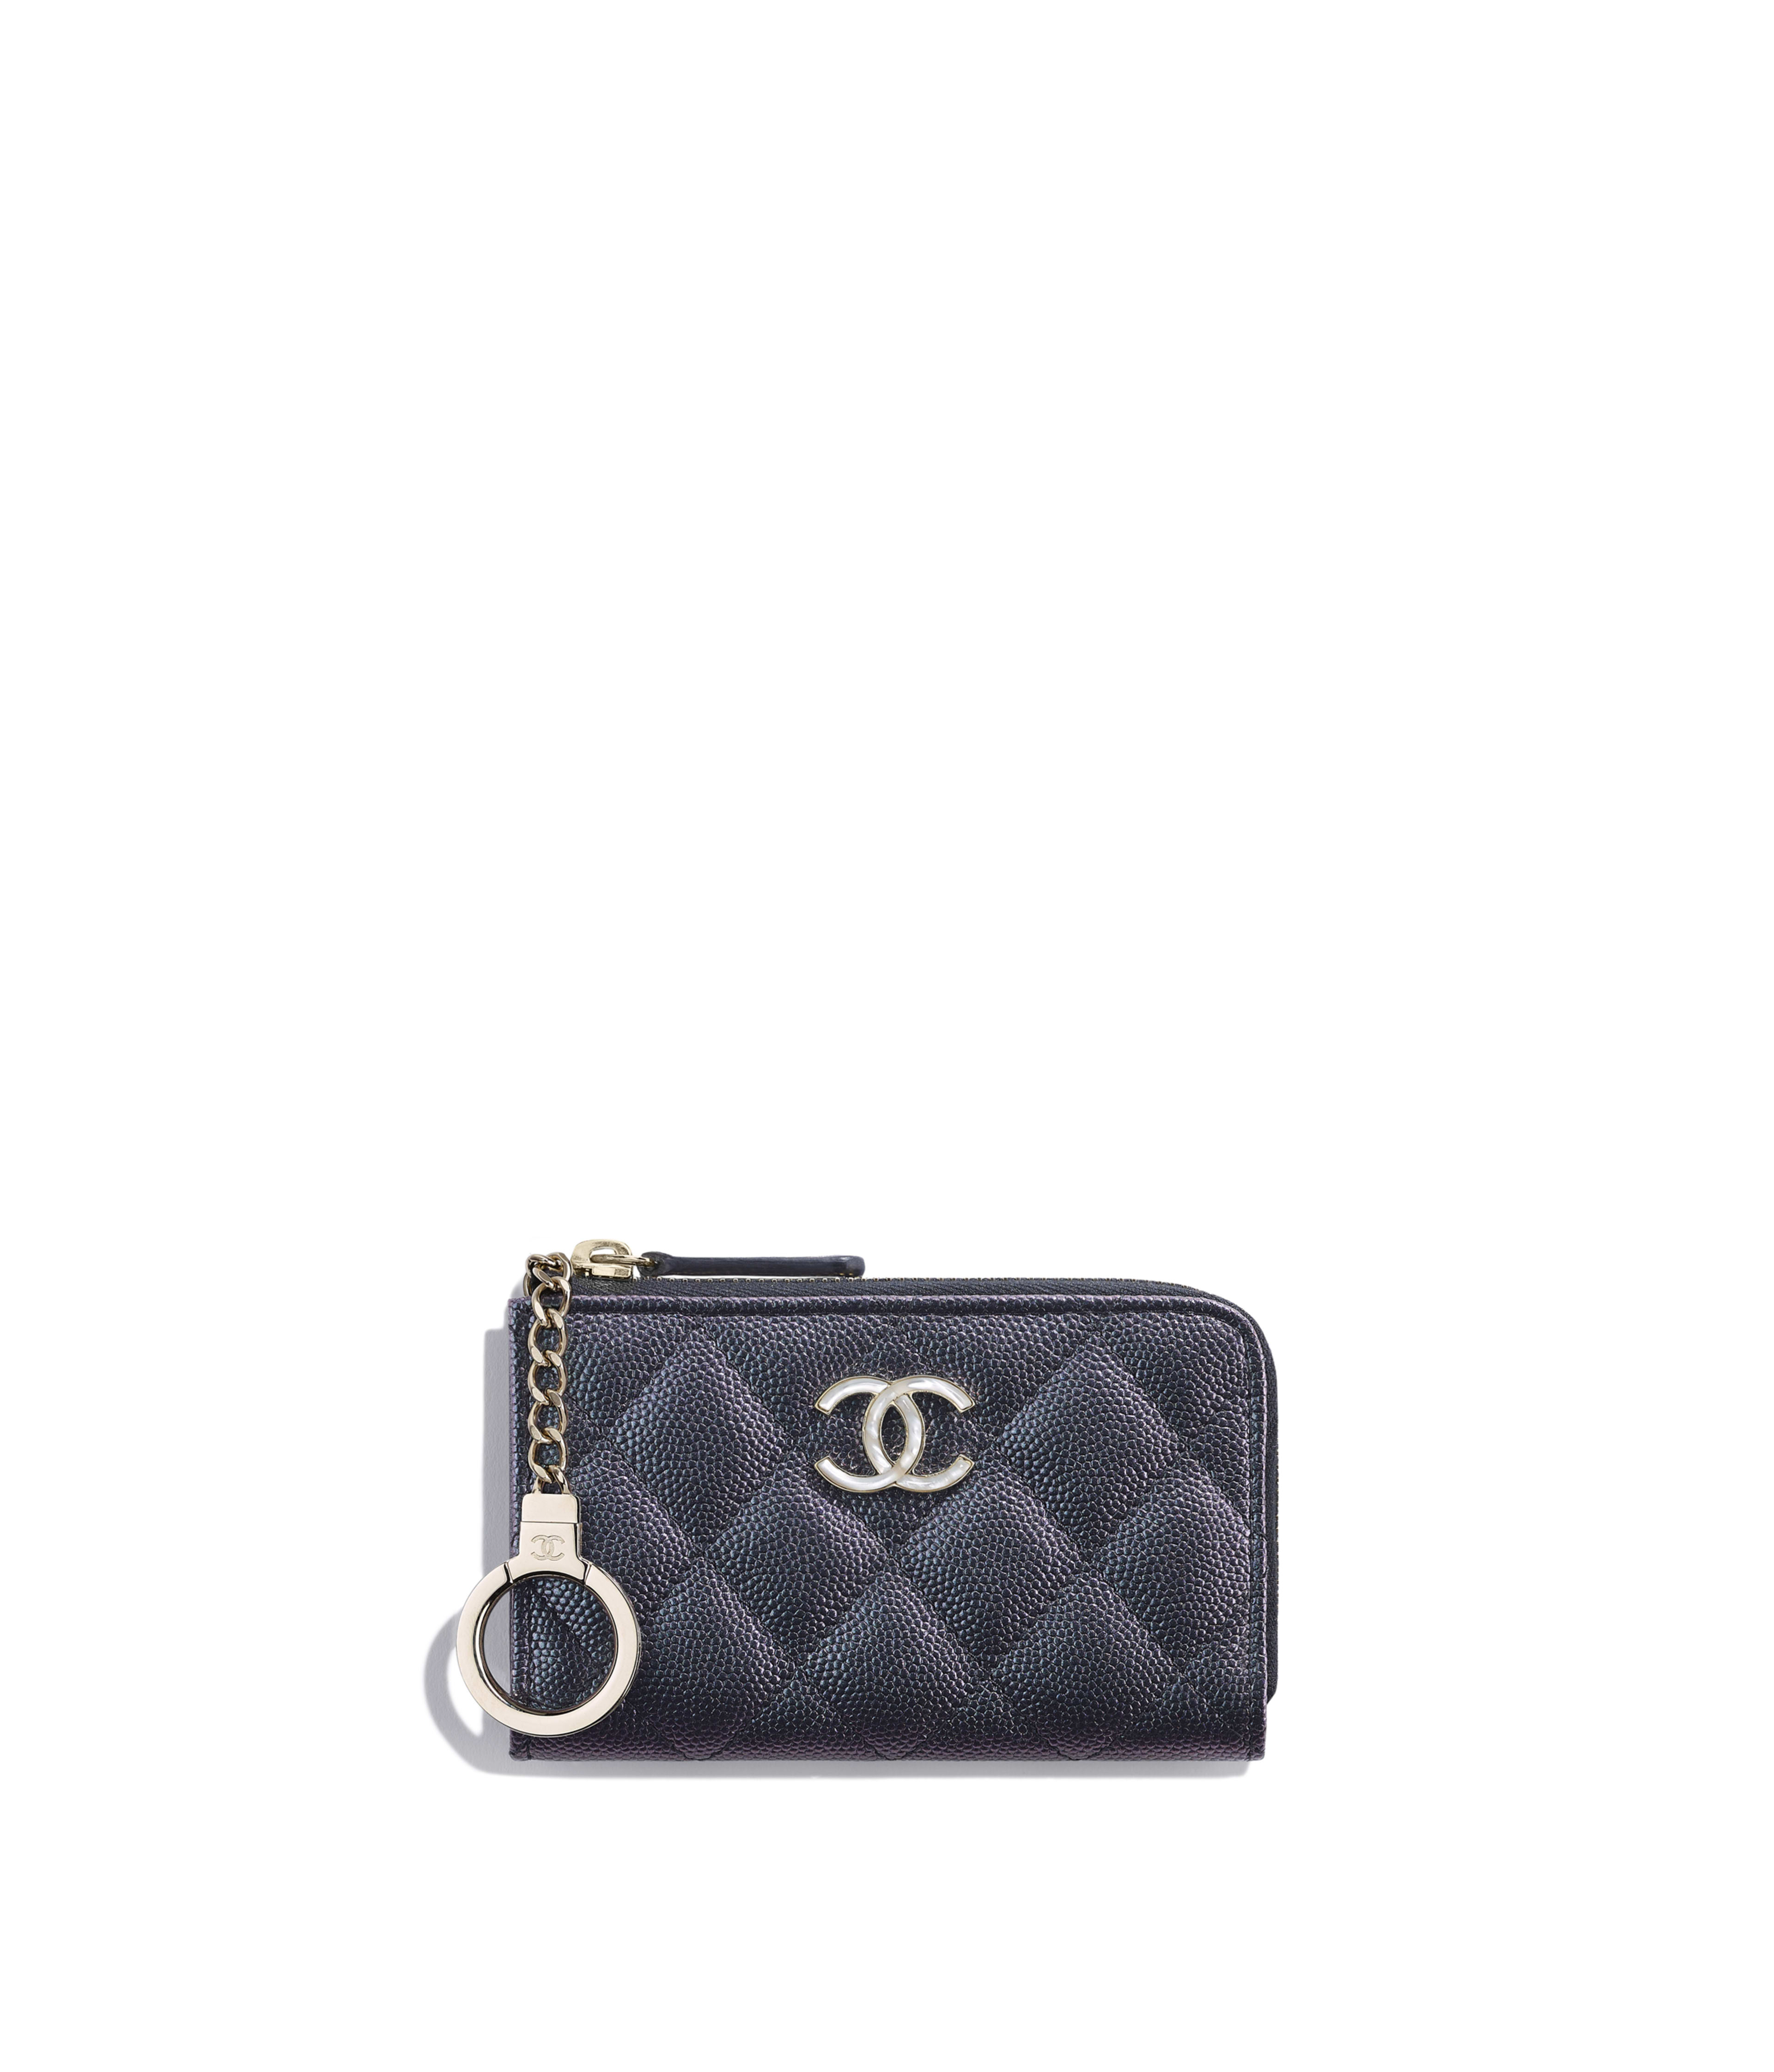 c9b17031f859 Zipped Key Holder Iridescent Grained Lambskin & Gold-Tone Metal, Black Ref.  AP0307B0048394305